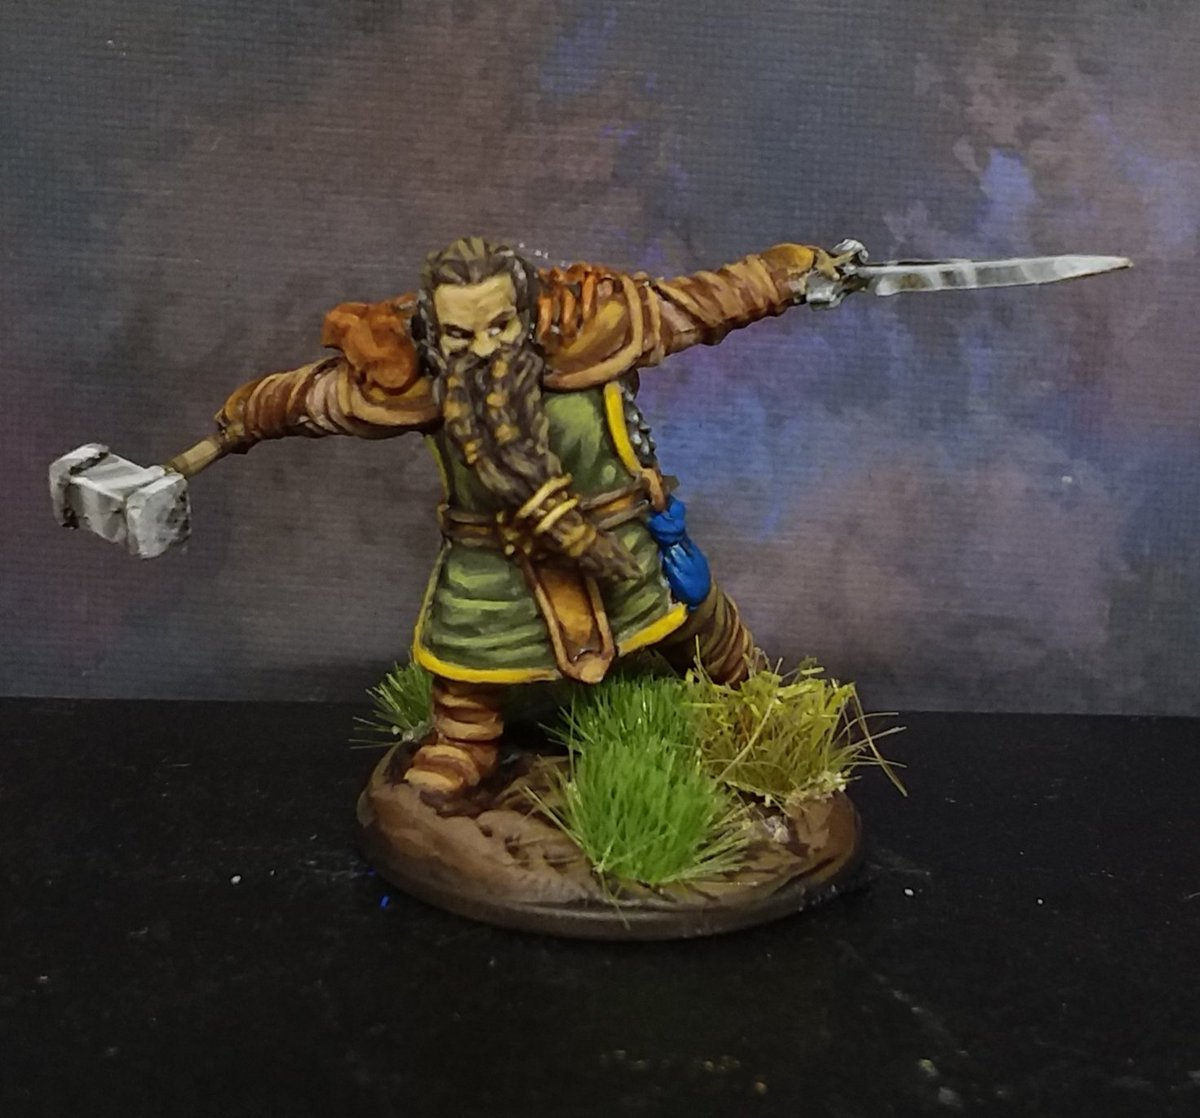 WhizKids Nolzur's D&D Miniatures Dwarven fighter painted for my personal collection. #PaintingMiniatures #DungeonsandDragons #dnd #miniatures #painting https://t.co/uBDgDG7H2d